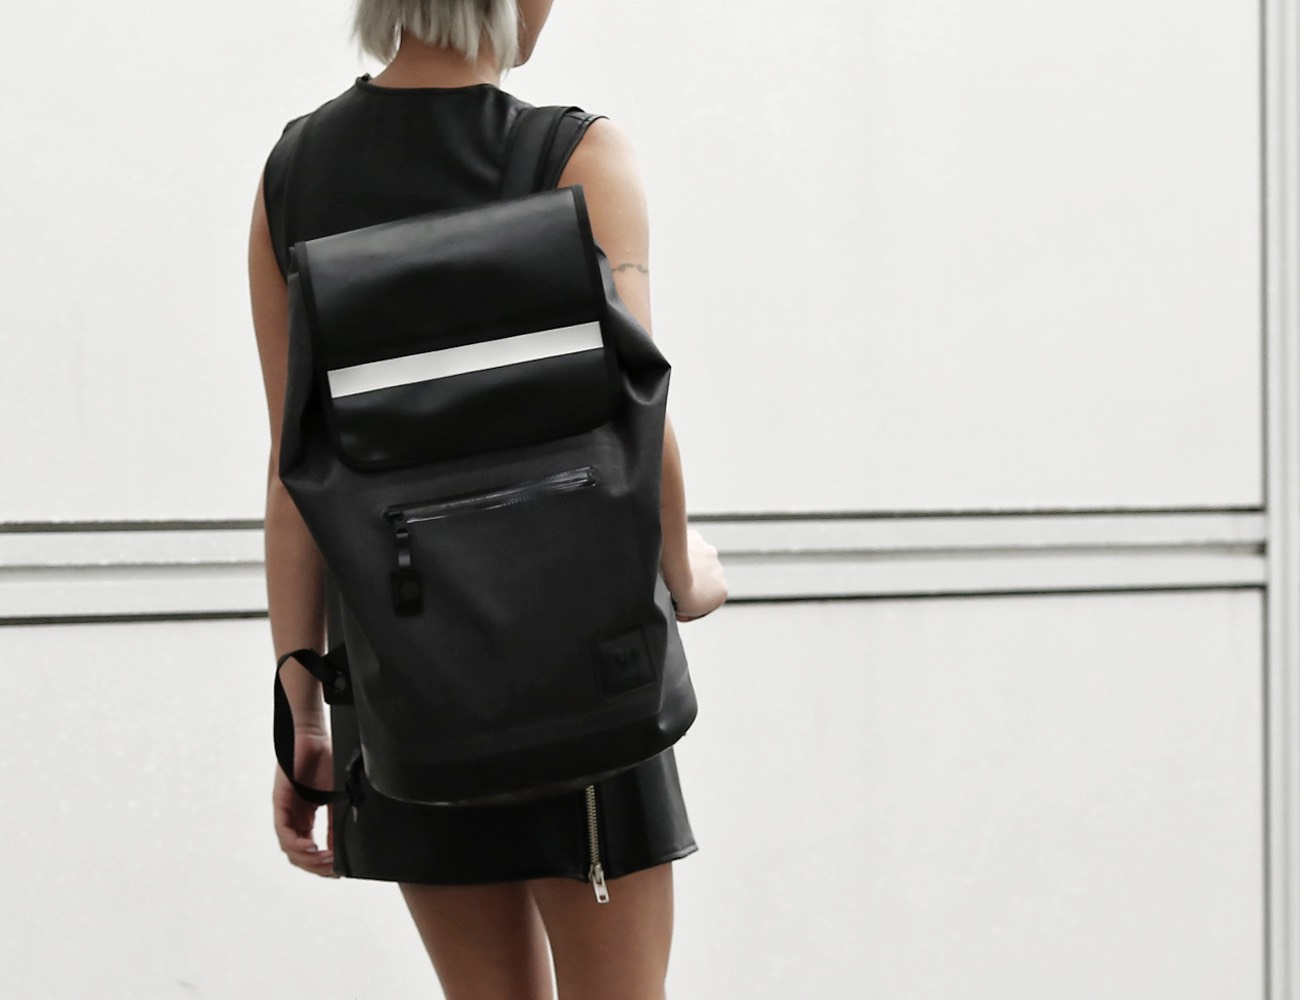 Urban Chic Dry Bags – The Elements Collection